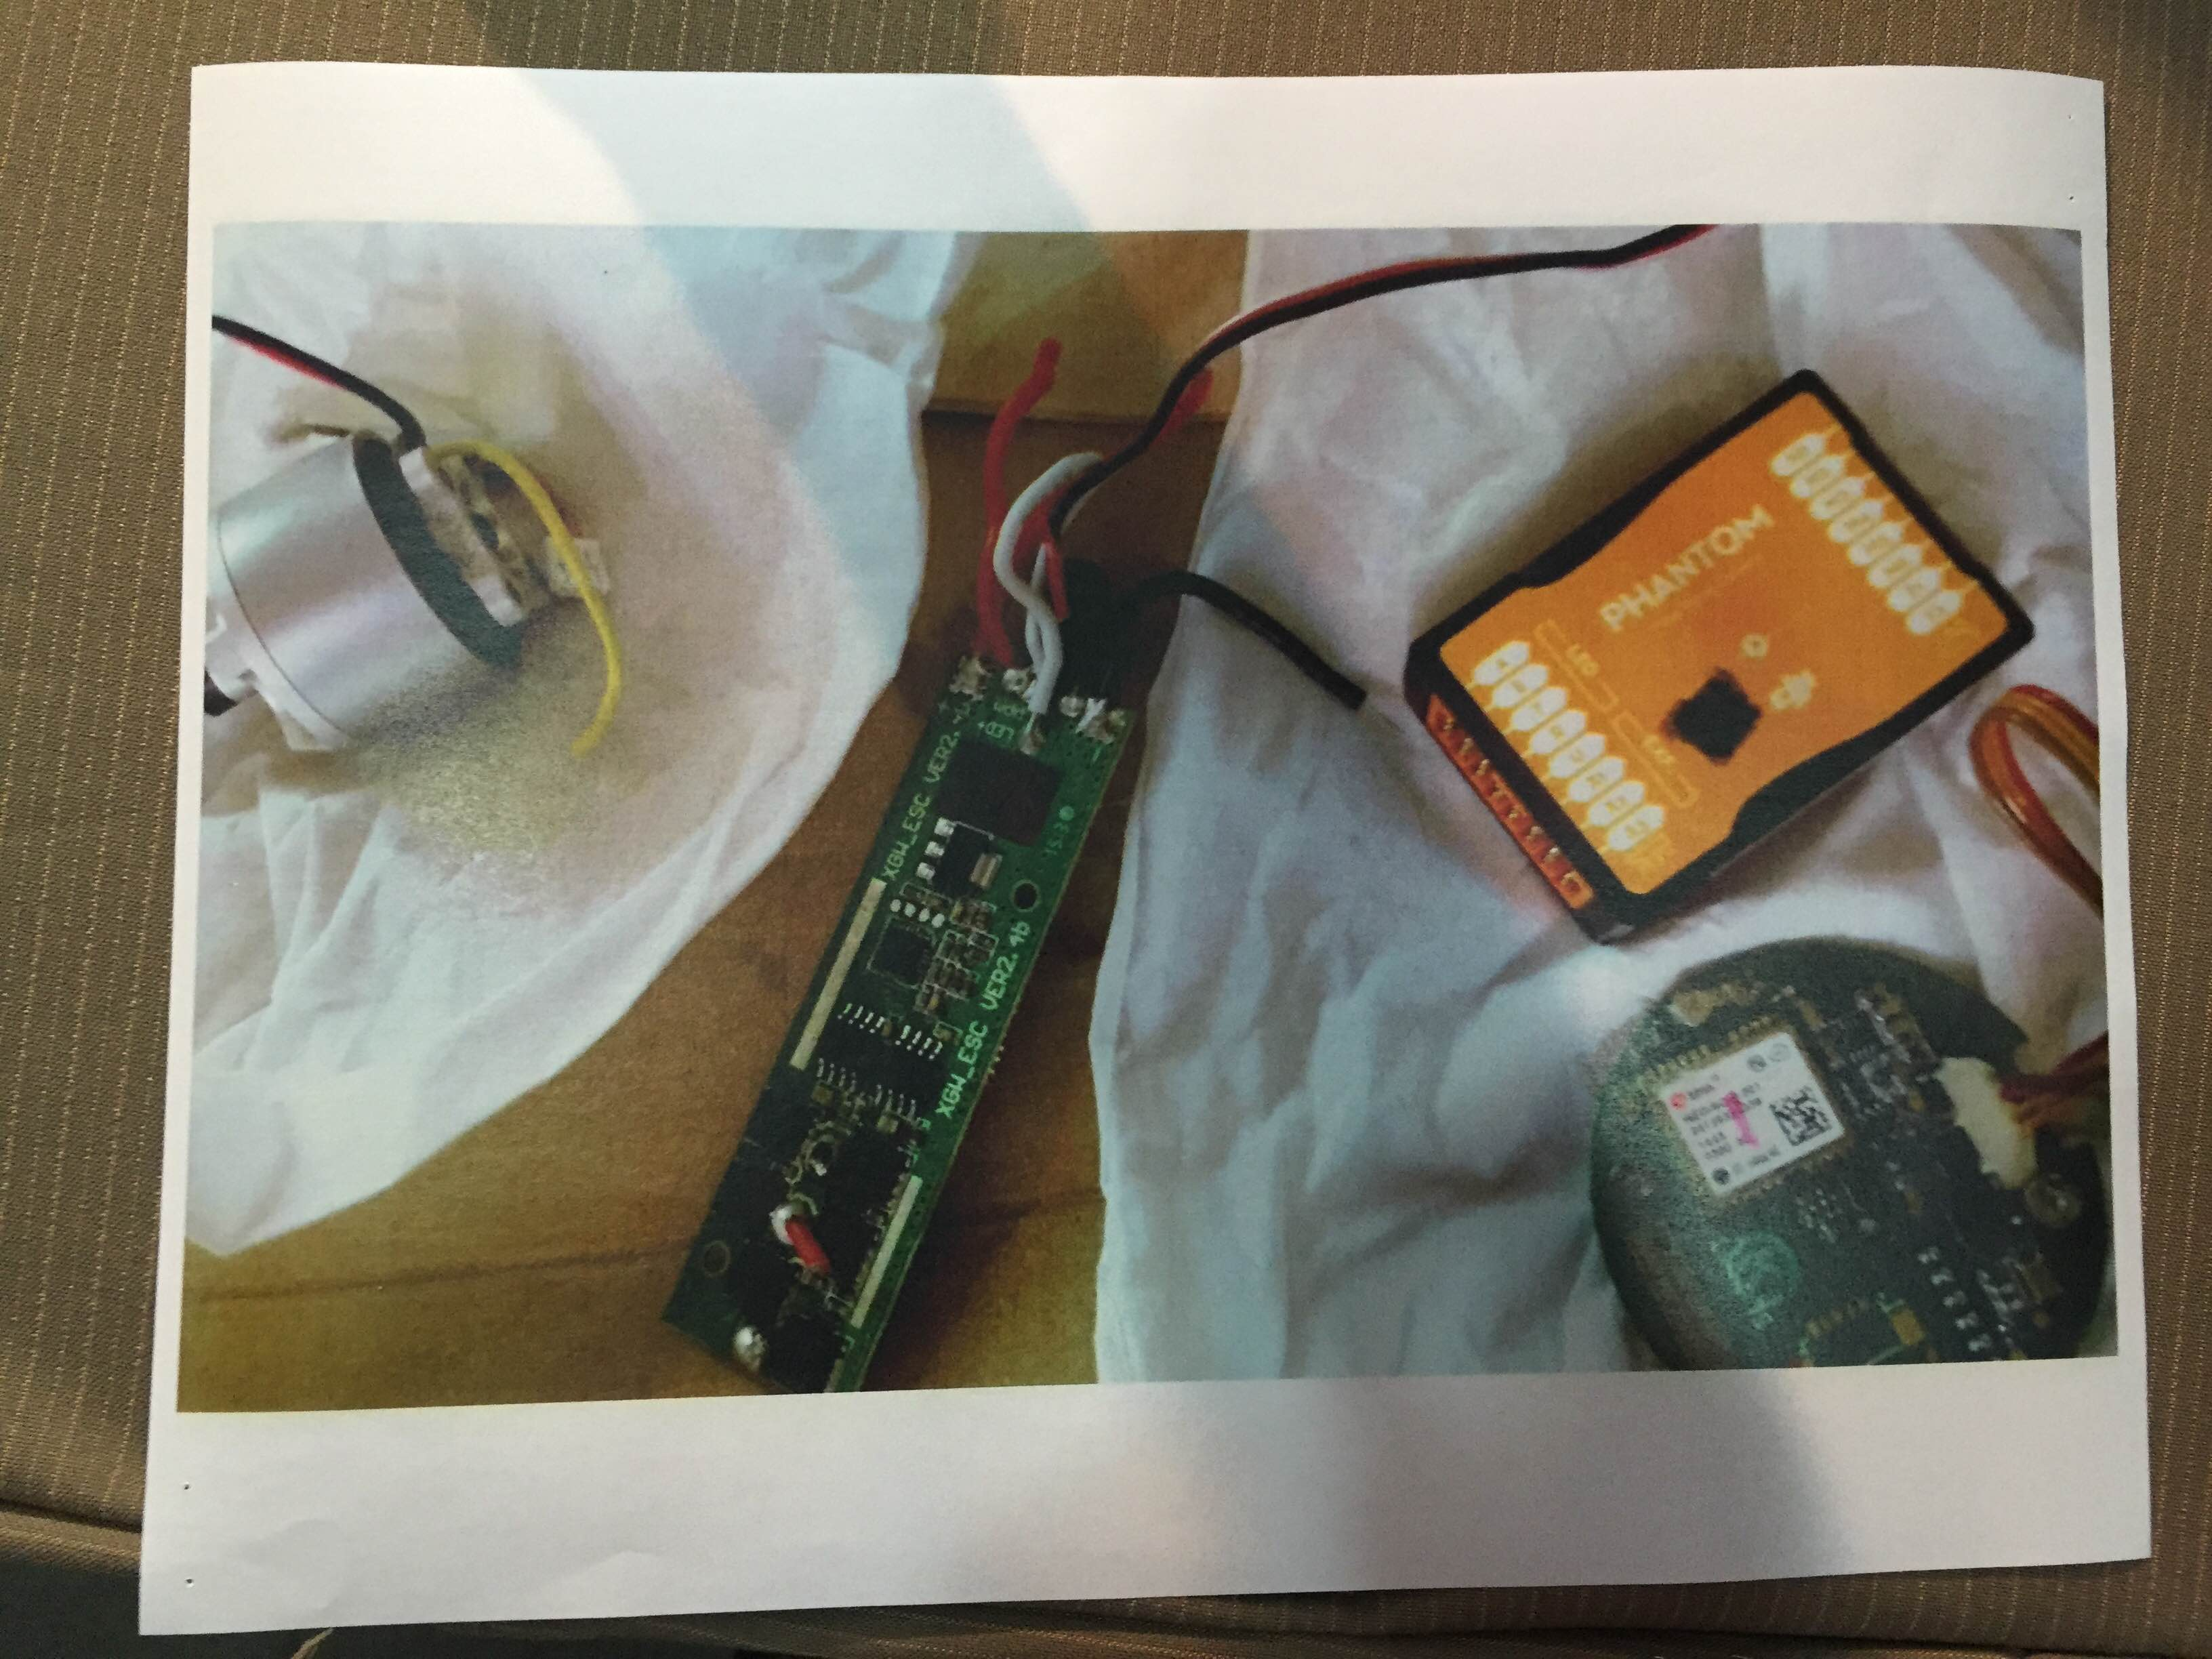 SPYING EQUIPMENT? Some electronic devices that INC claims they found hidden inside the deliveries for the Manalo siblings. Photo by Mara Cepeda/Rappler